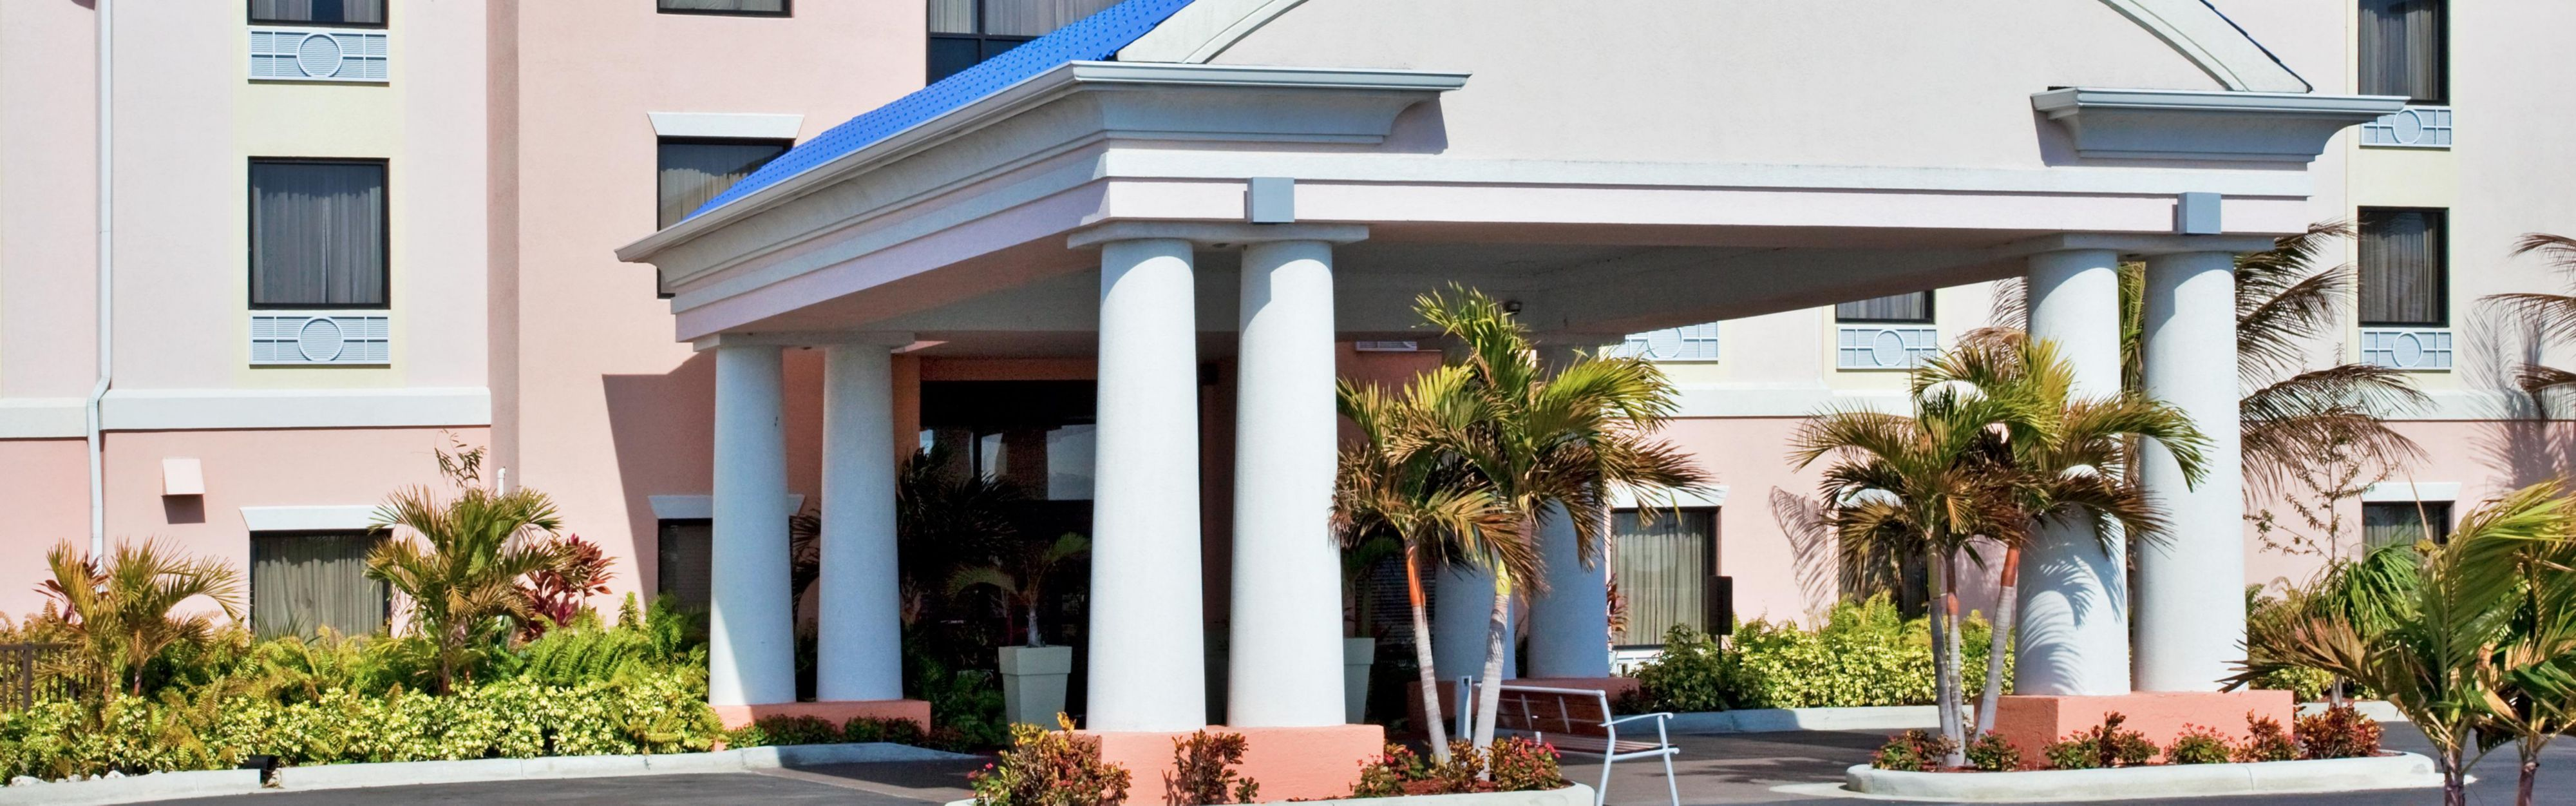 Holiday Inn Express & Suites Lake Okeechobee